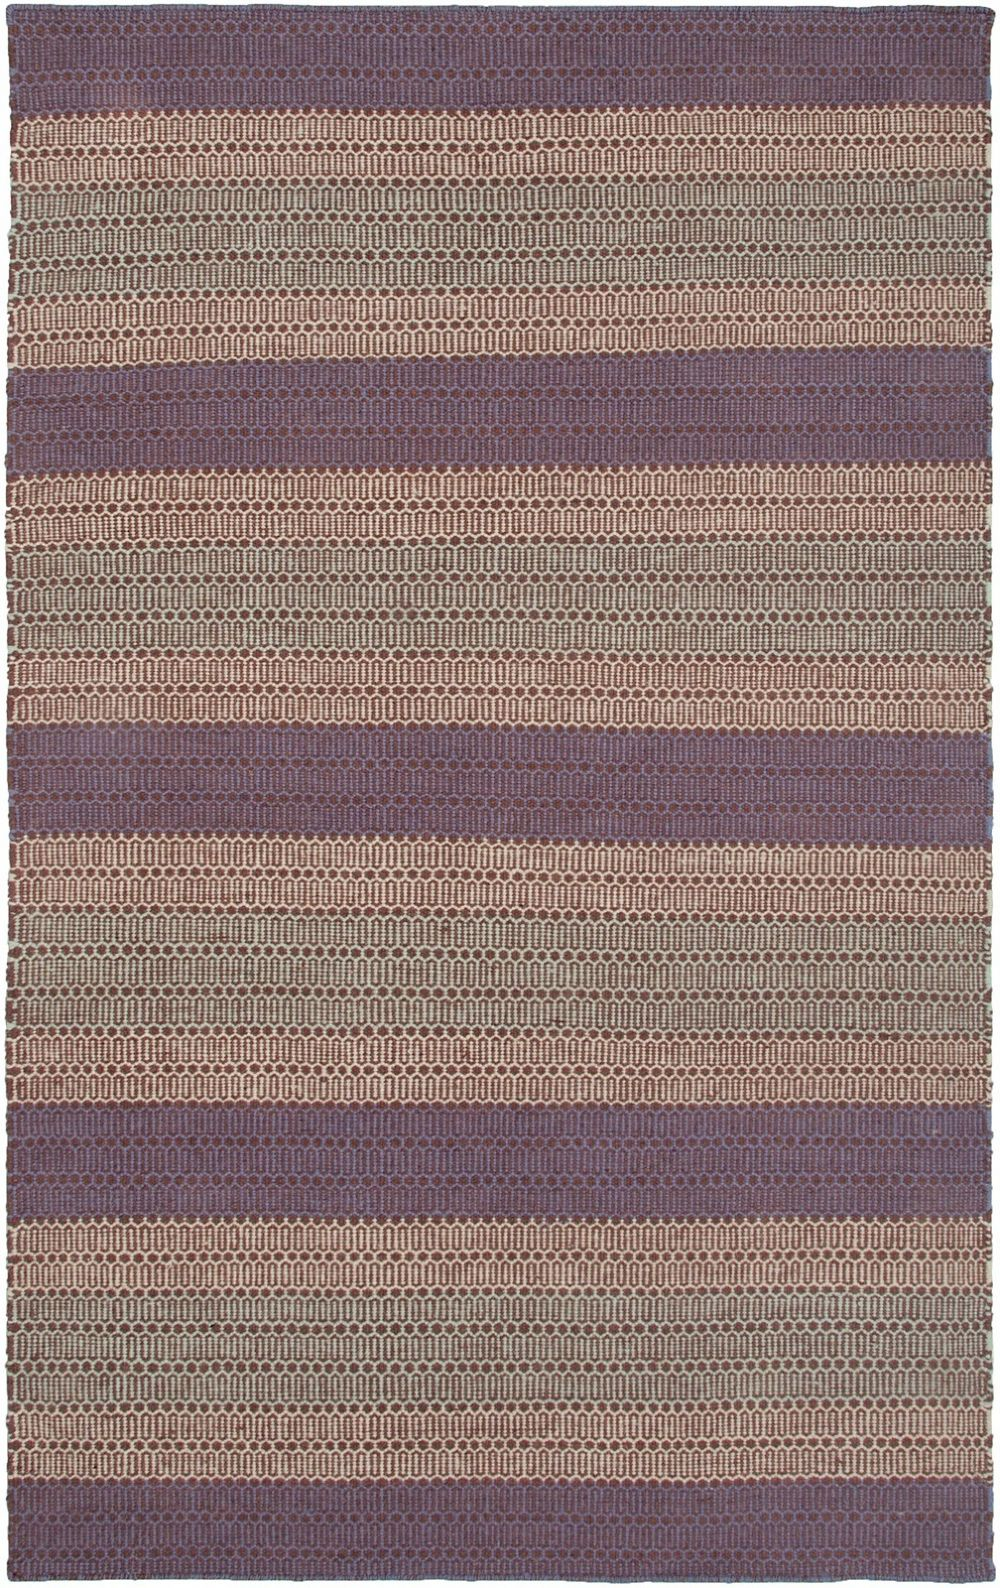 rizzy rugs twist solid/striped area rug collection